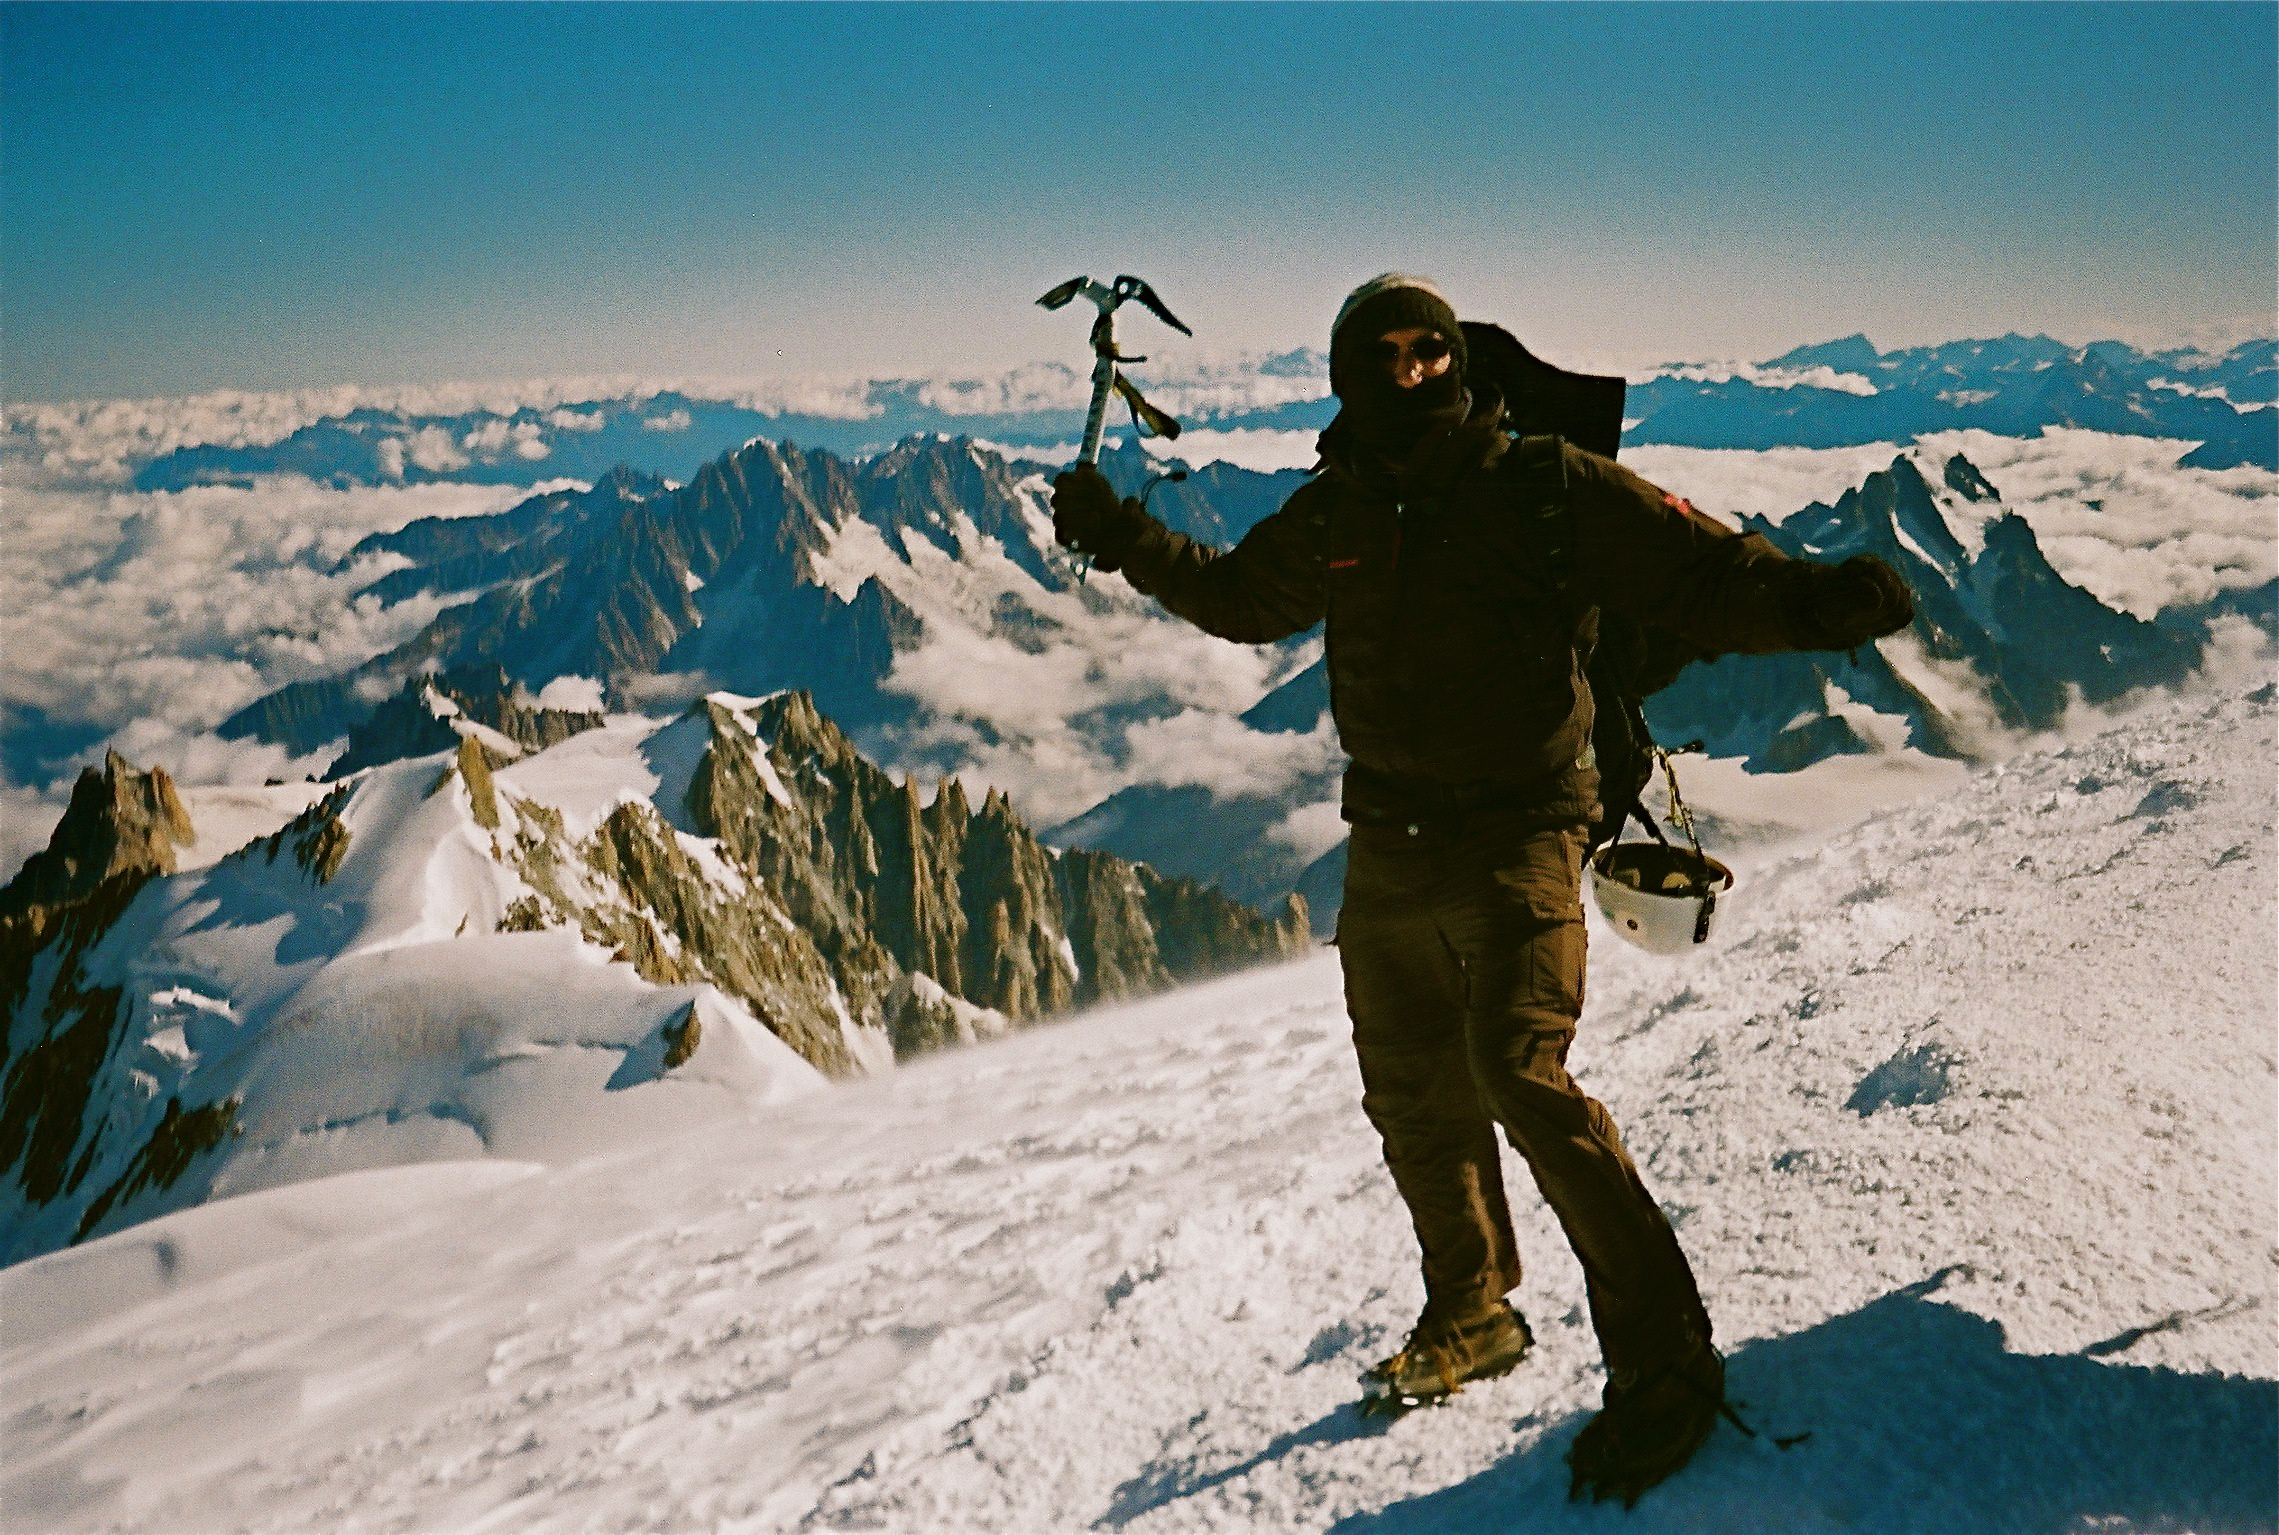 Francis Tapon on the summit of Mont Blanc 4,810 meters (15,781 feet).